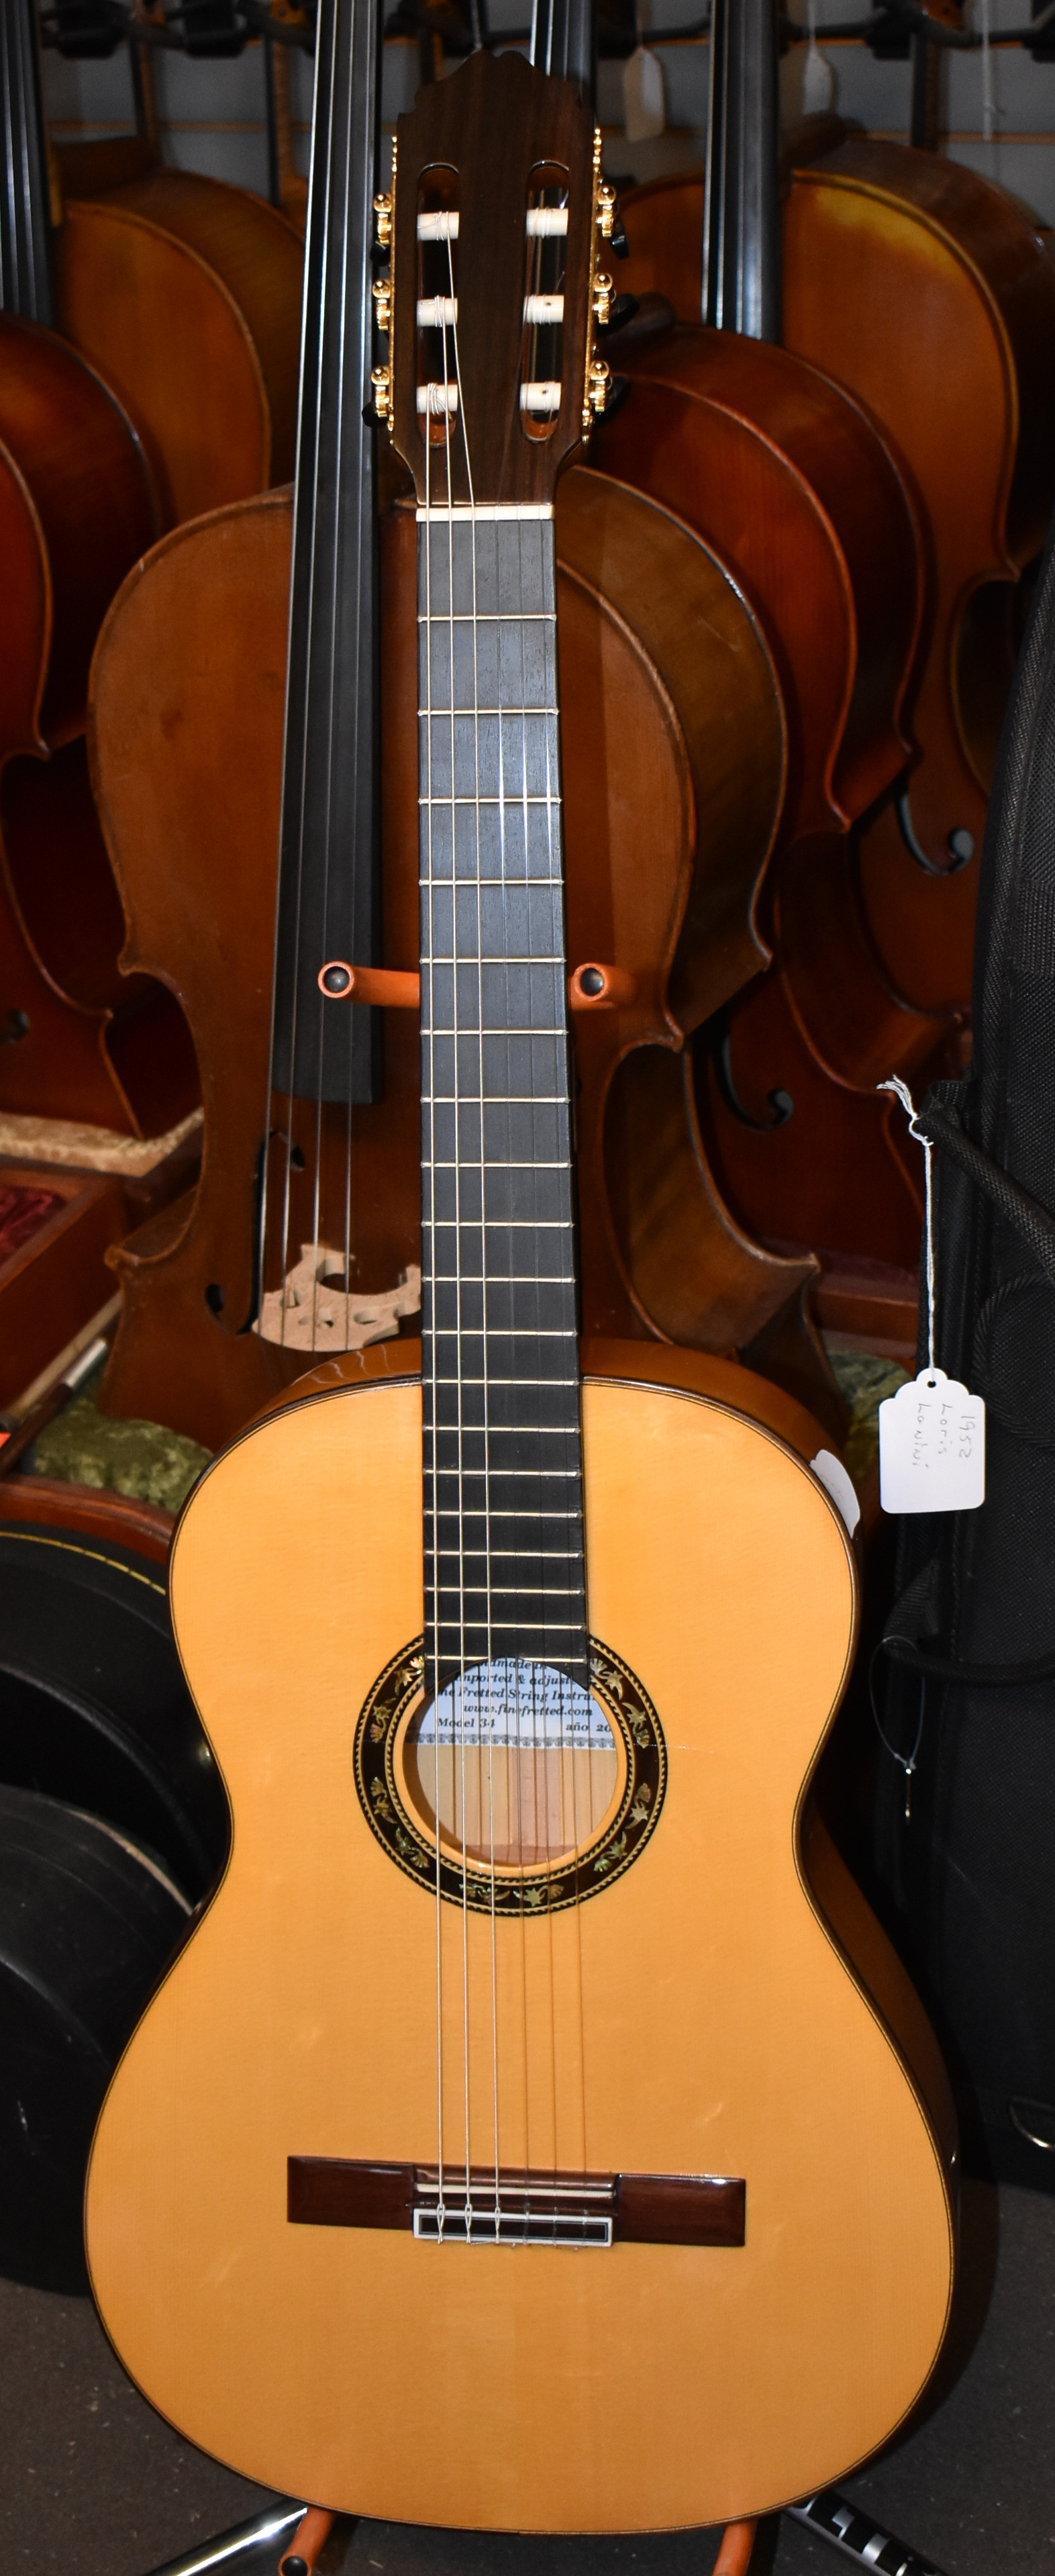 2017 Luis Molina Flamenco Guitar without 2 Chevrons Model 34